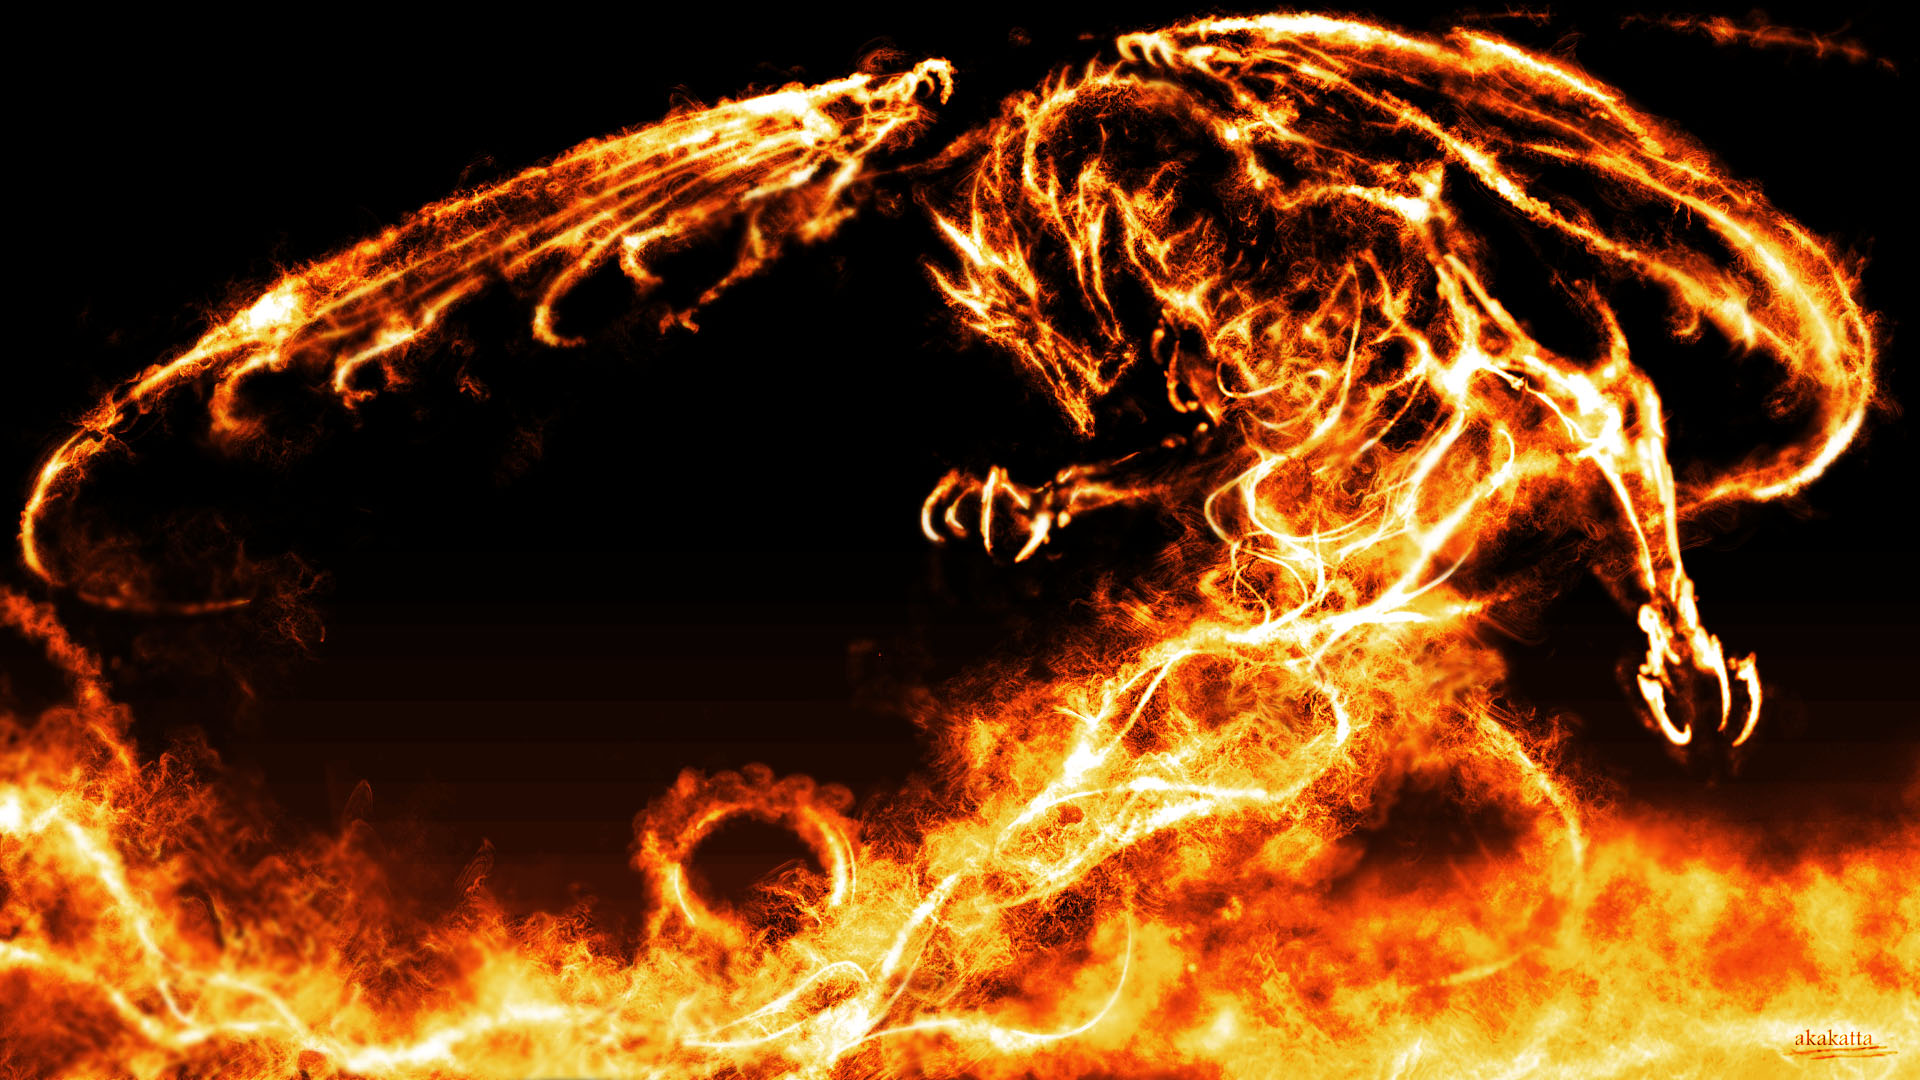 wallpapers dragon fire ice 1920x1080 1920x1080